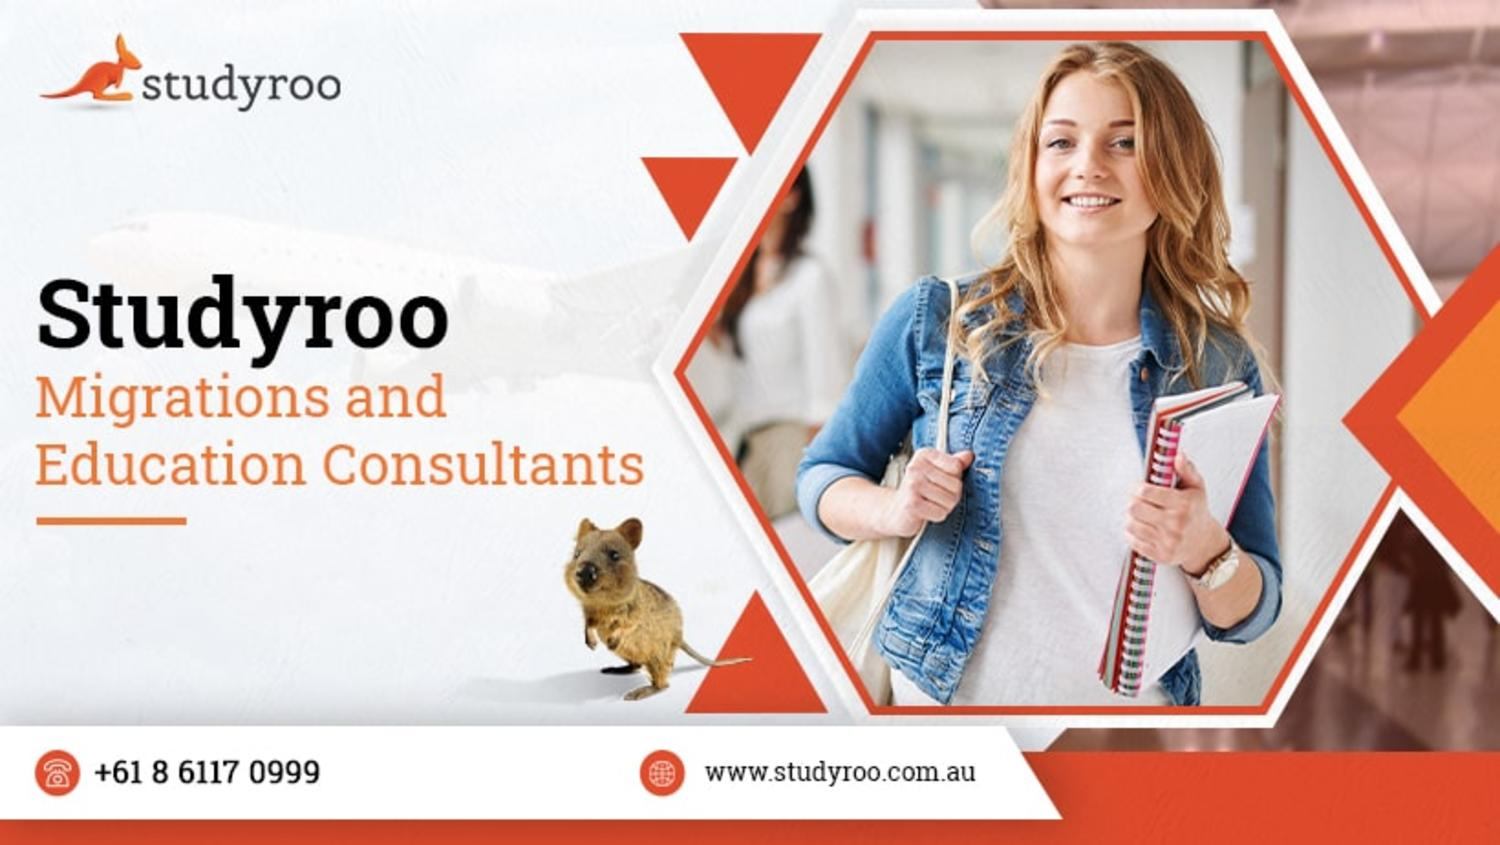 Studyroo - Education Consultant Perth   Study in Perth